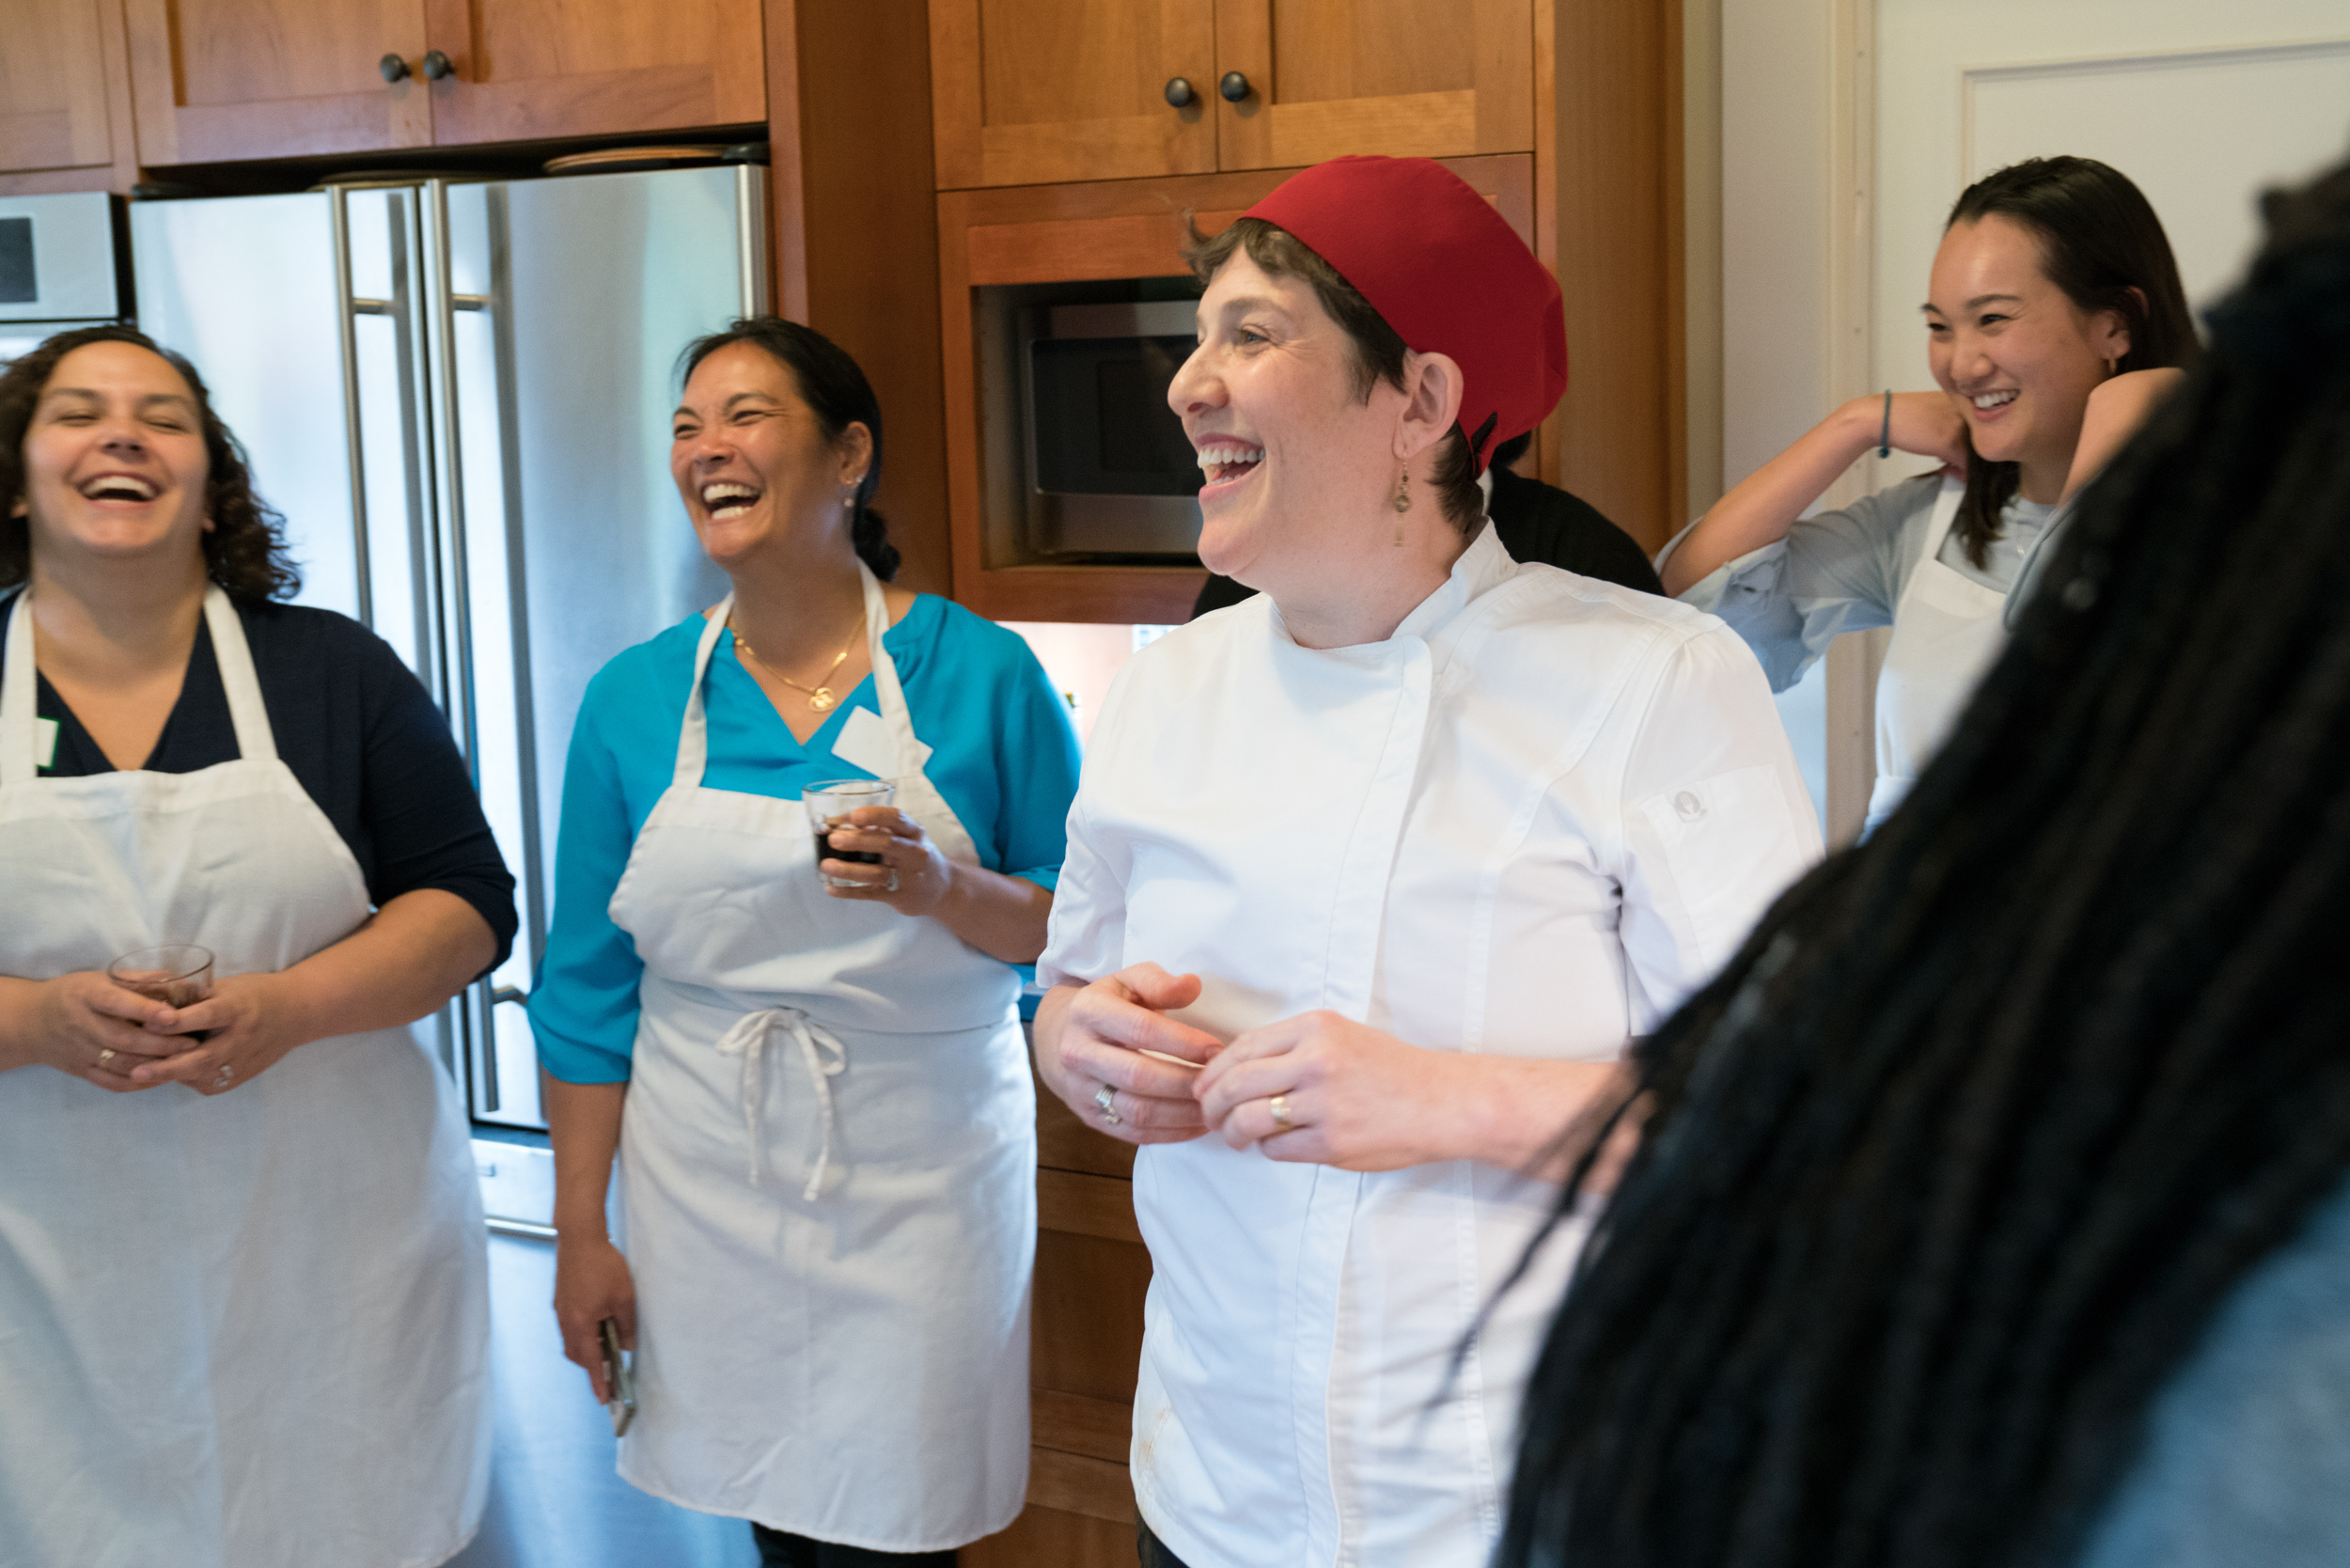 Cook-with-Chef-Traci-team-building-laughing-with-team.jpg